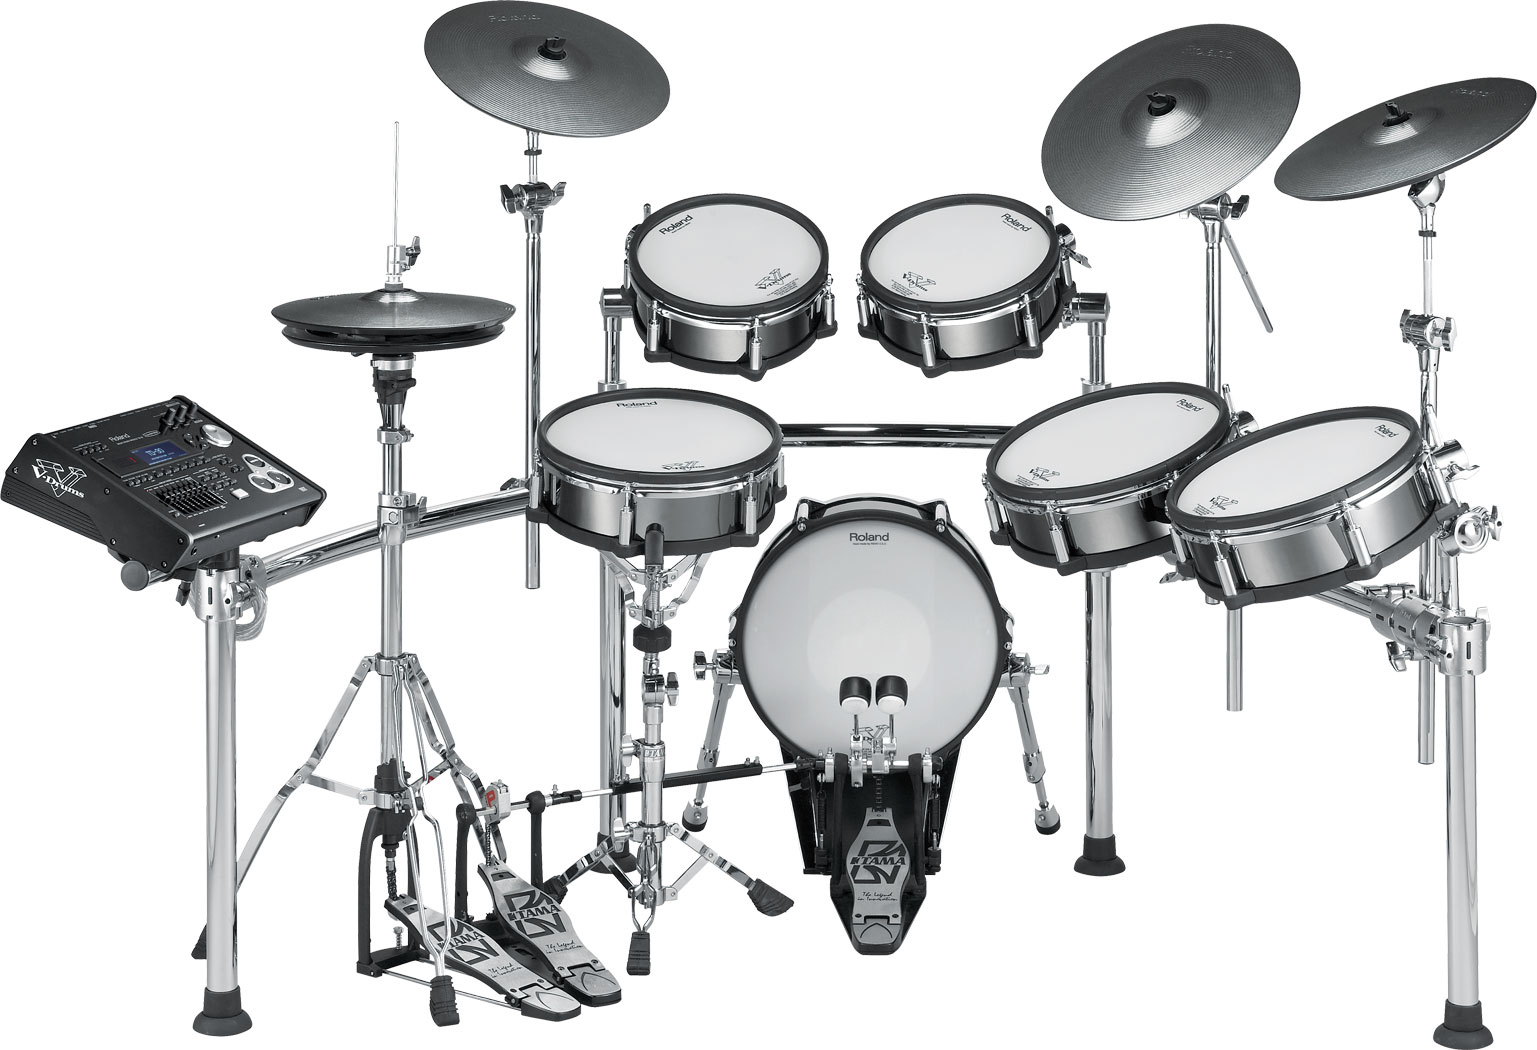 The Roland TD-30KV Drum Set